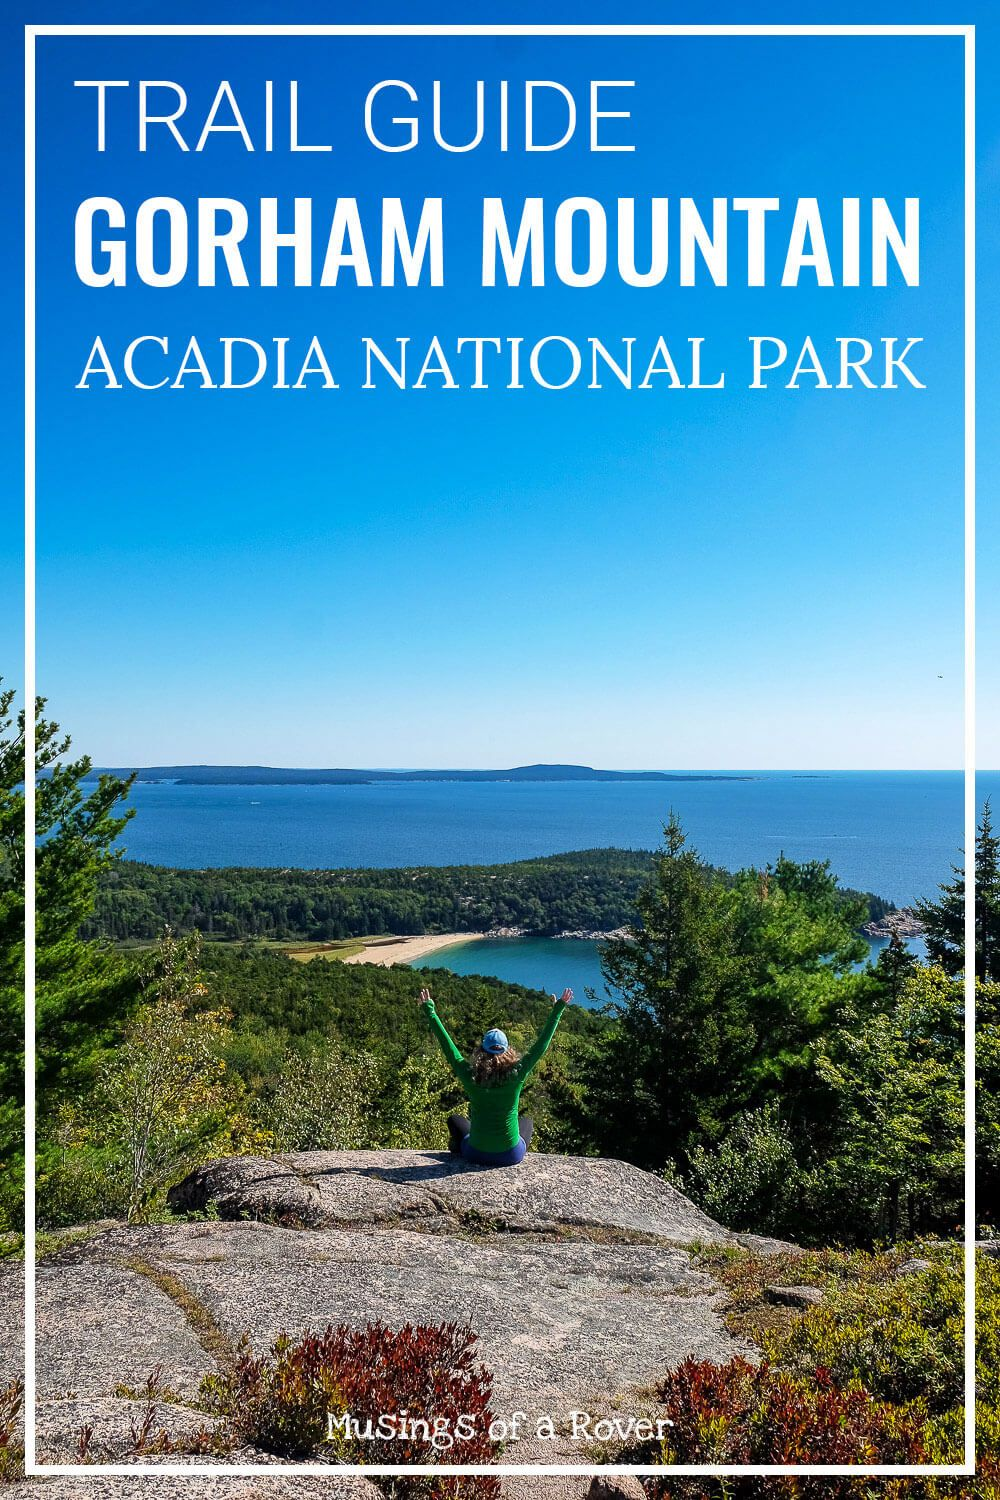 The Gotham Mountain Trail Loop is a great hike for those touring the Park Loop Road. It's a bit of a longer hike, but it combines some of the best elements from this side of Acadia National Park. You'll hike up the Beehive, a classic, iron-rung. The Gorham Mountain summit will give you sweeping views from Otter Point in the south to Sand Beach and the Beehive in the north. It ends along the Ocean Path, one of best and easiest trails in the park. This is a great hike for your Acadia itinerary.